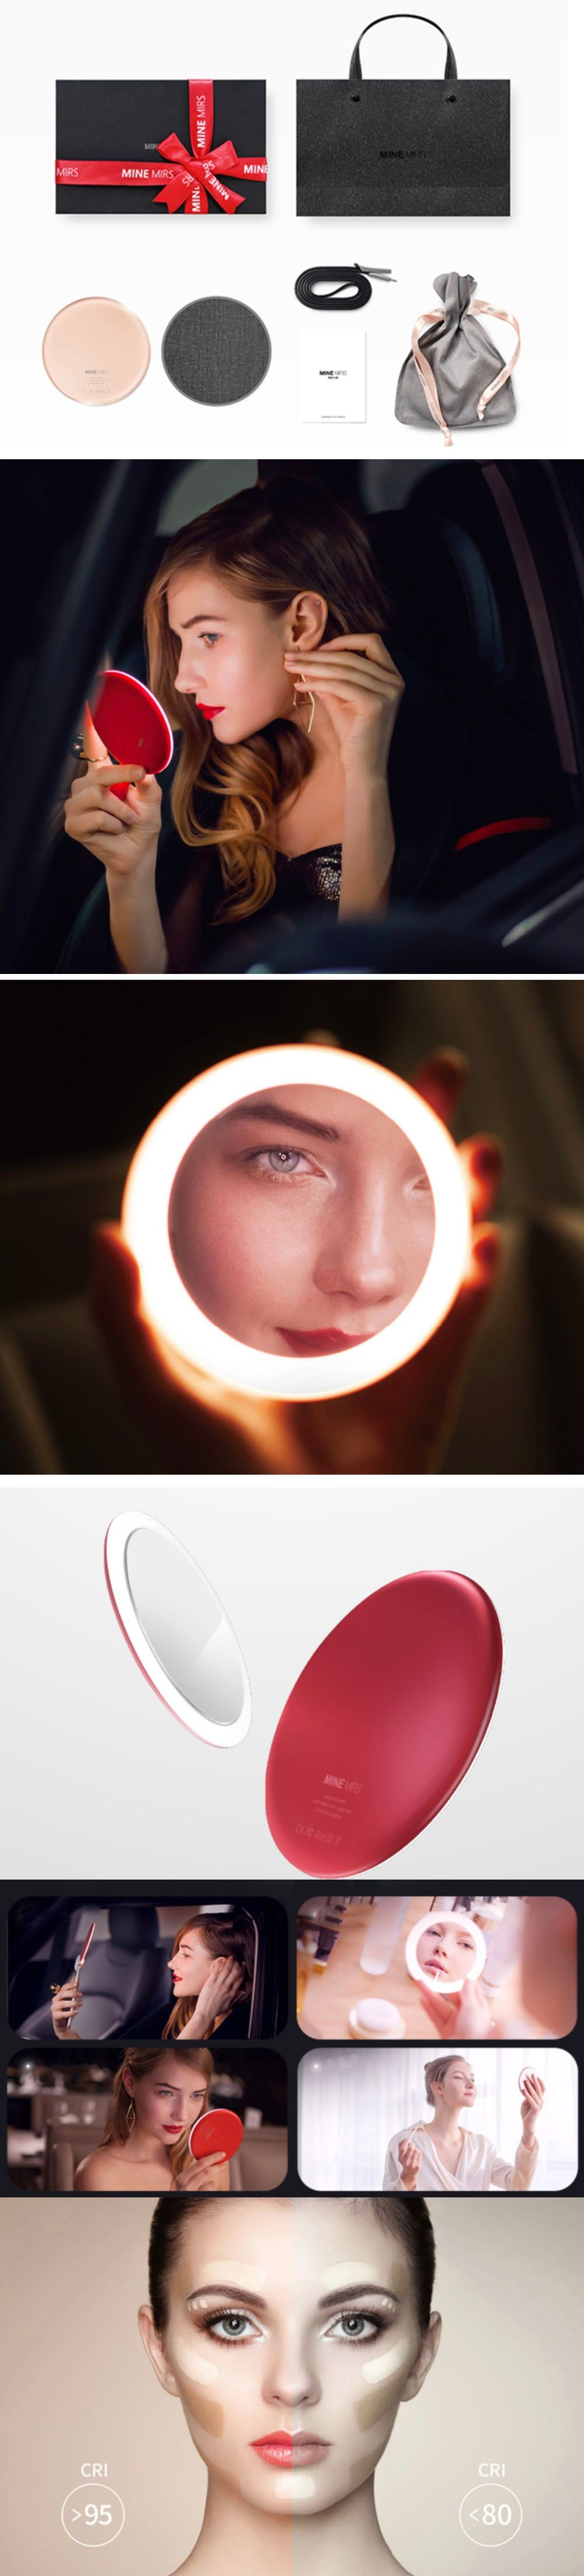 Pocket Mirror with LED Light By Mine Mirs